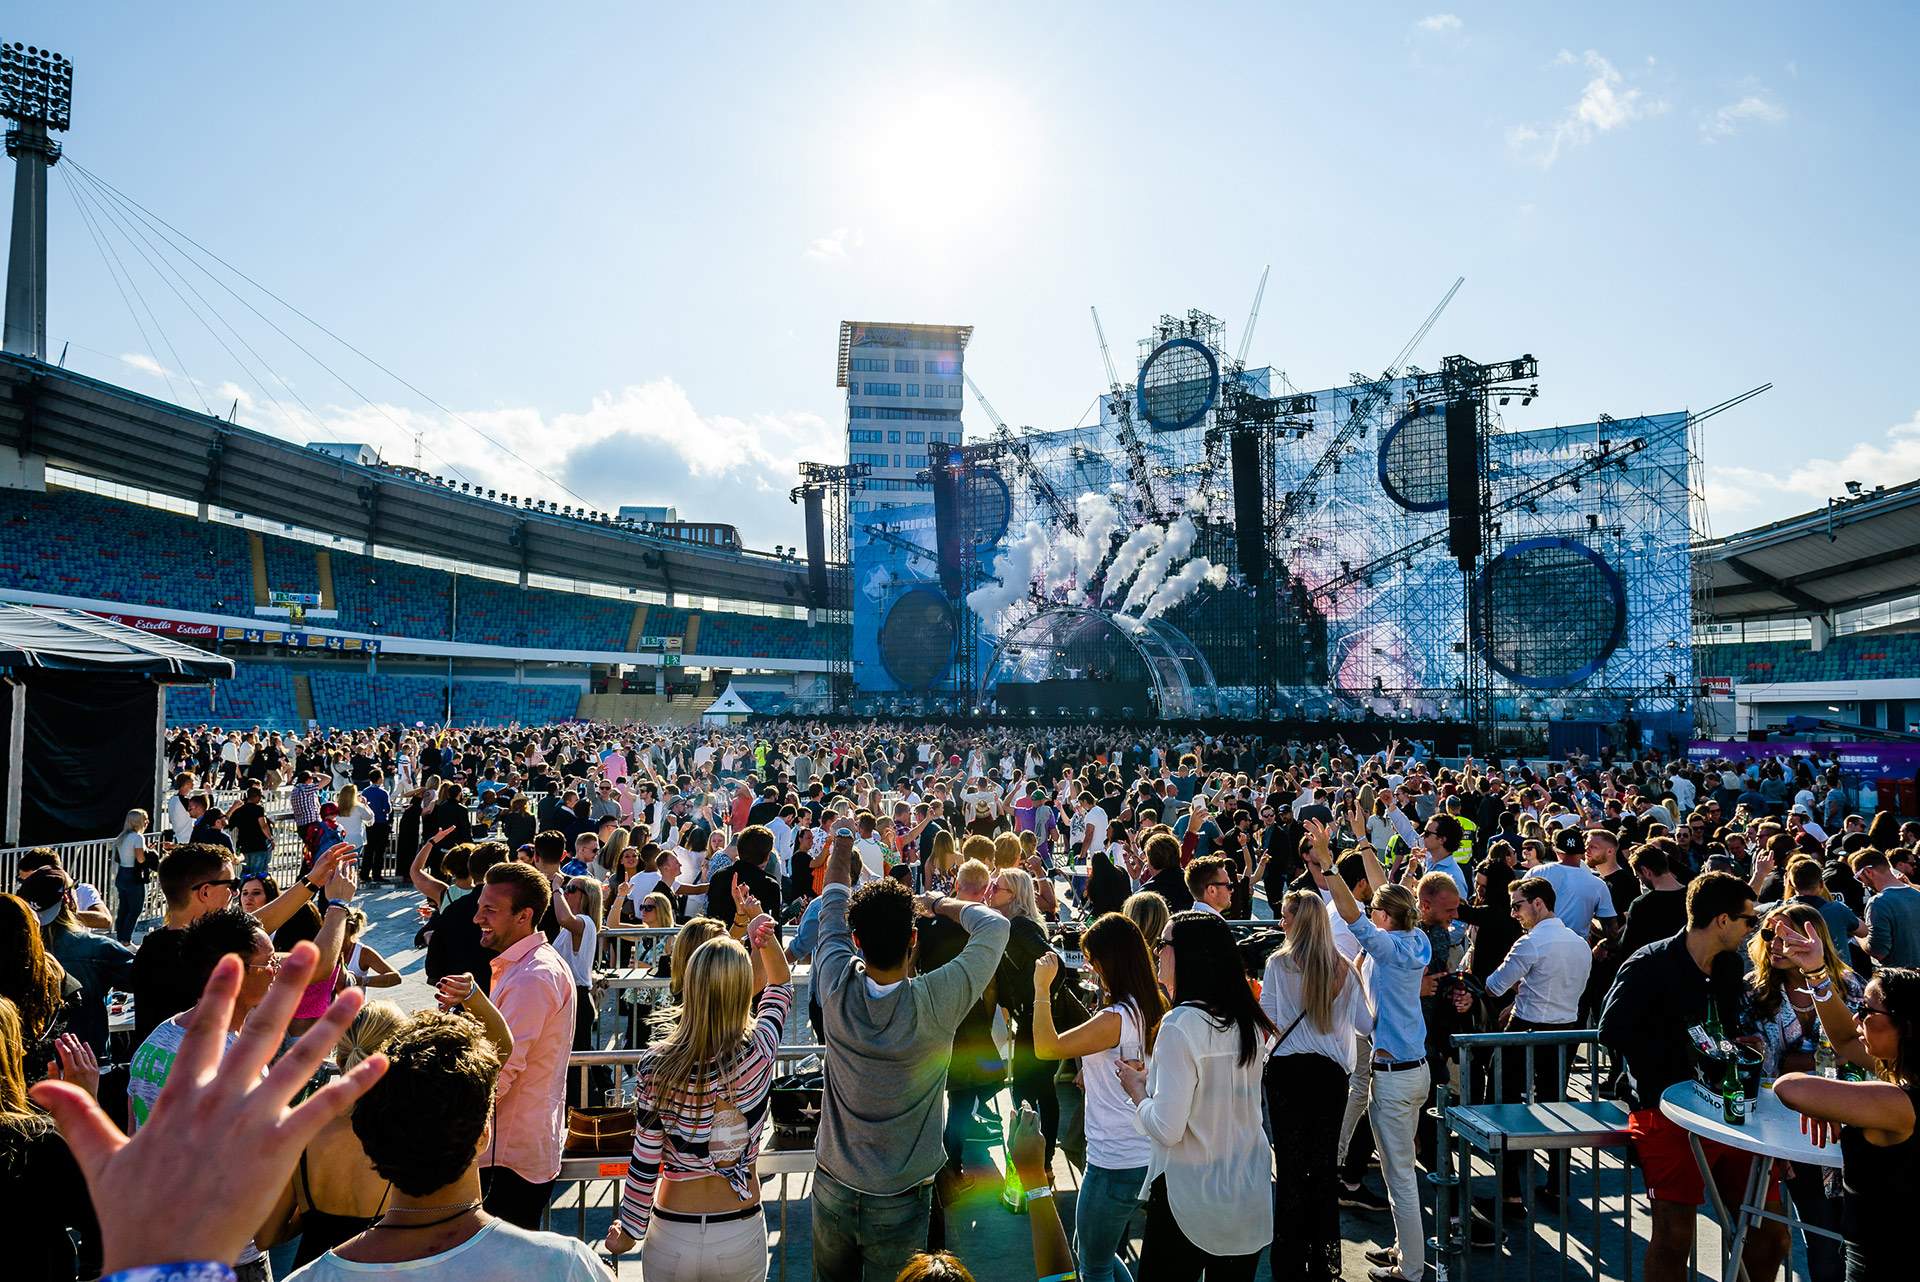 Studentrabatt på Summerburst 2018